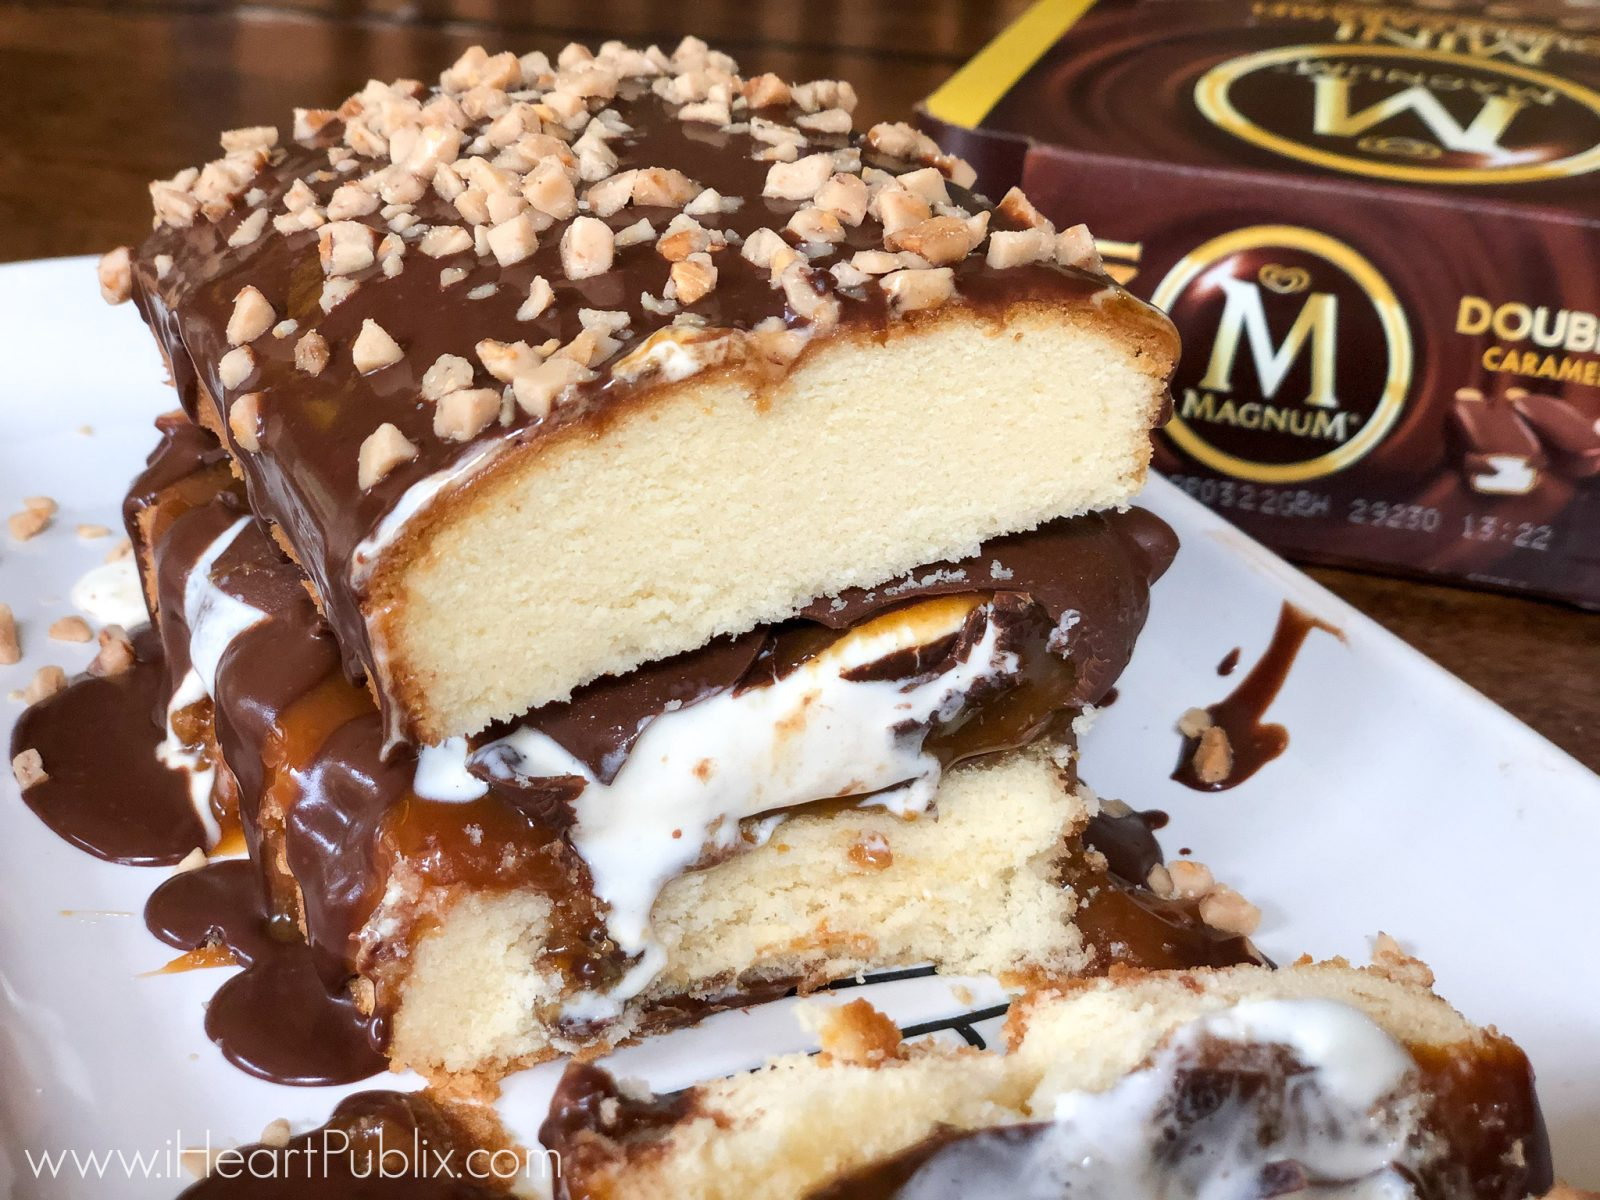 Magnum Chocolate & Caramel Overload Cake - Indulgent Dessert For The Amazing Ice Cream Deals Available Now At Publix on I Heart Publix